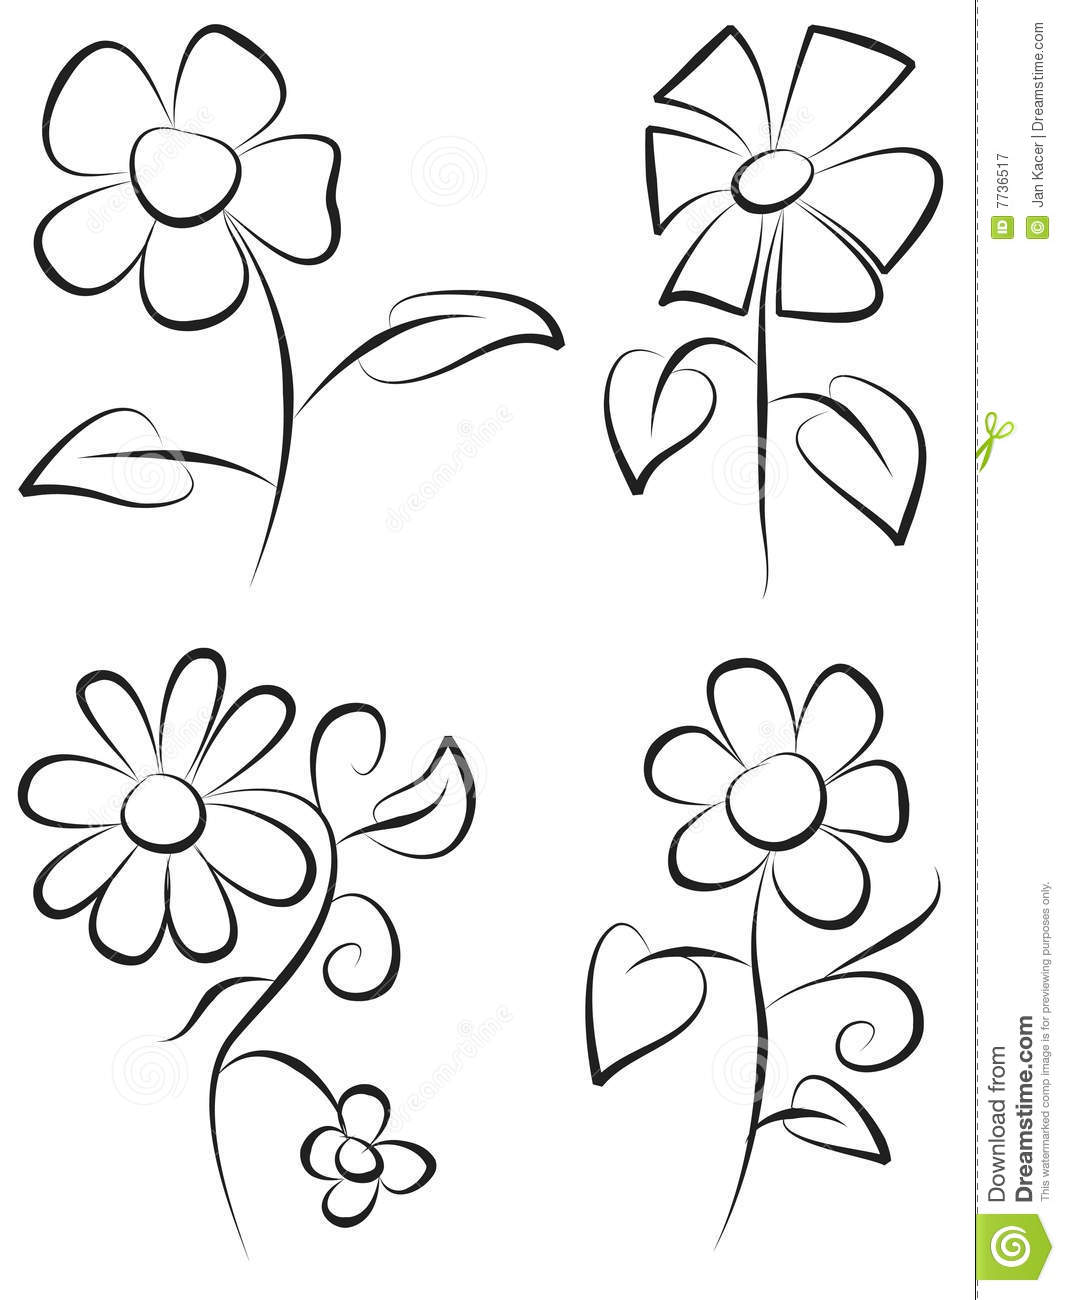 Hand Draw Flowers Royalty Free Stock Photography Image 7736517